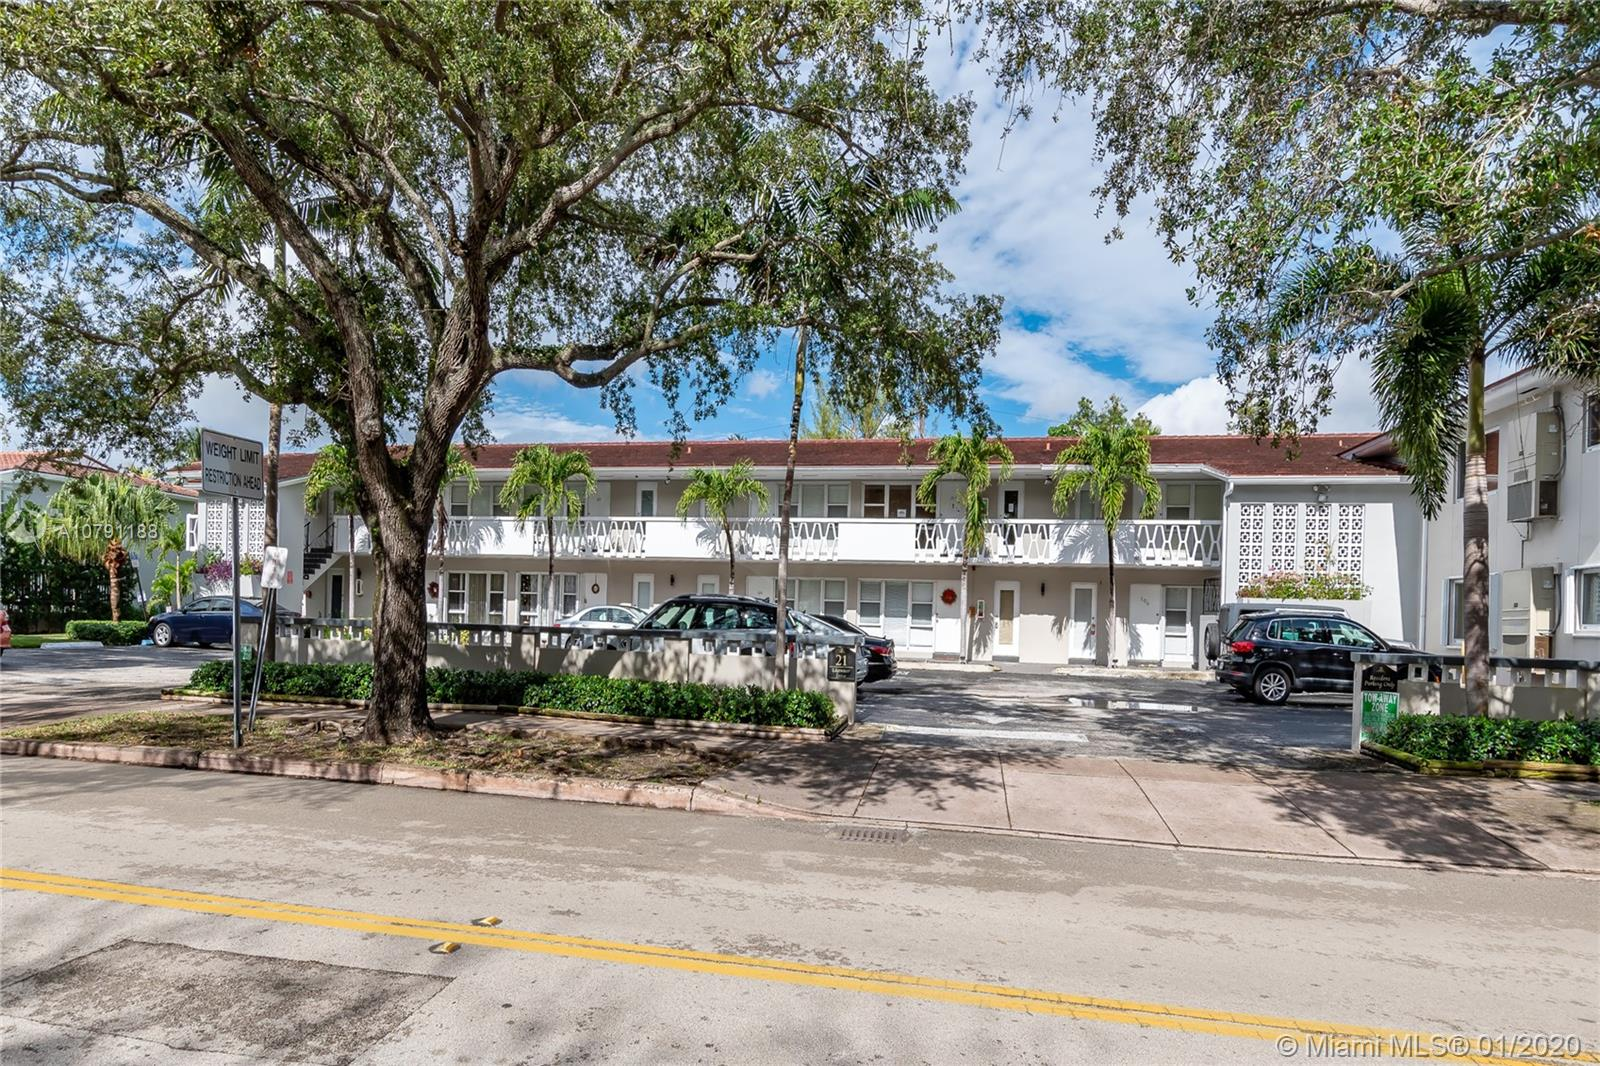 ** HUGE CORNER UNIT 2 BEDS /1 BATH  IN DESIRABLE EDGE WATER DRIVE.** One of the most tranquil places in the heart of Coral Gables on a tree shaded street. New stainless steel appliances, new title floors, granite countertop on the kitchen, an overlooking pool recently renovated. Enjoy a great location closed to great schools and University of Miami. New water heater, new stove and brand new electric panel. Community laundry upgraded. Extremely low monthly maintenance fee.